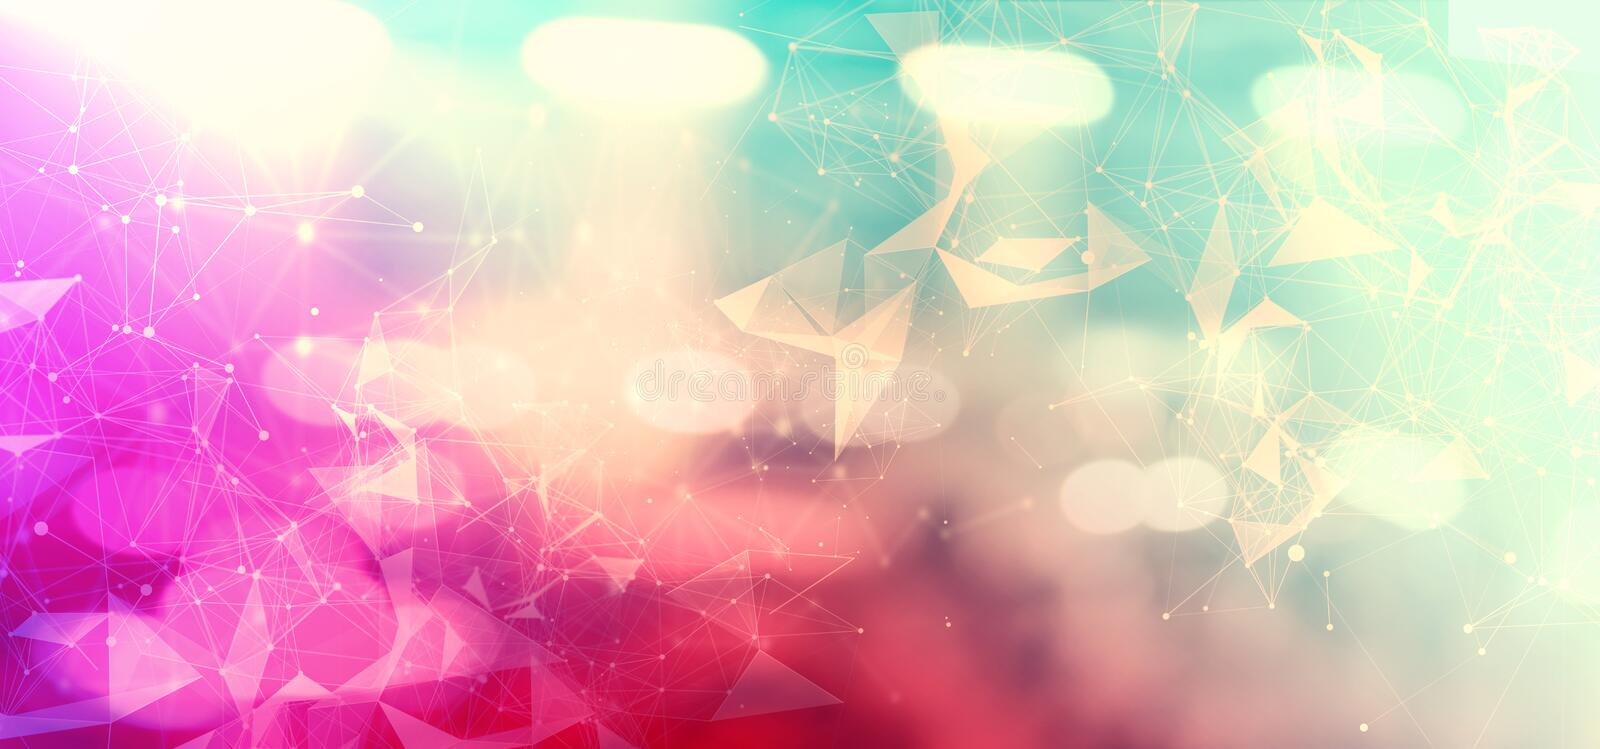 Abstract technology background royalty free stock image